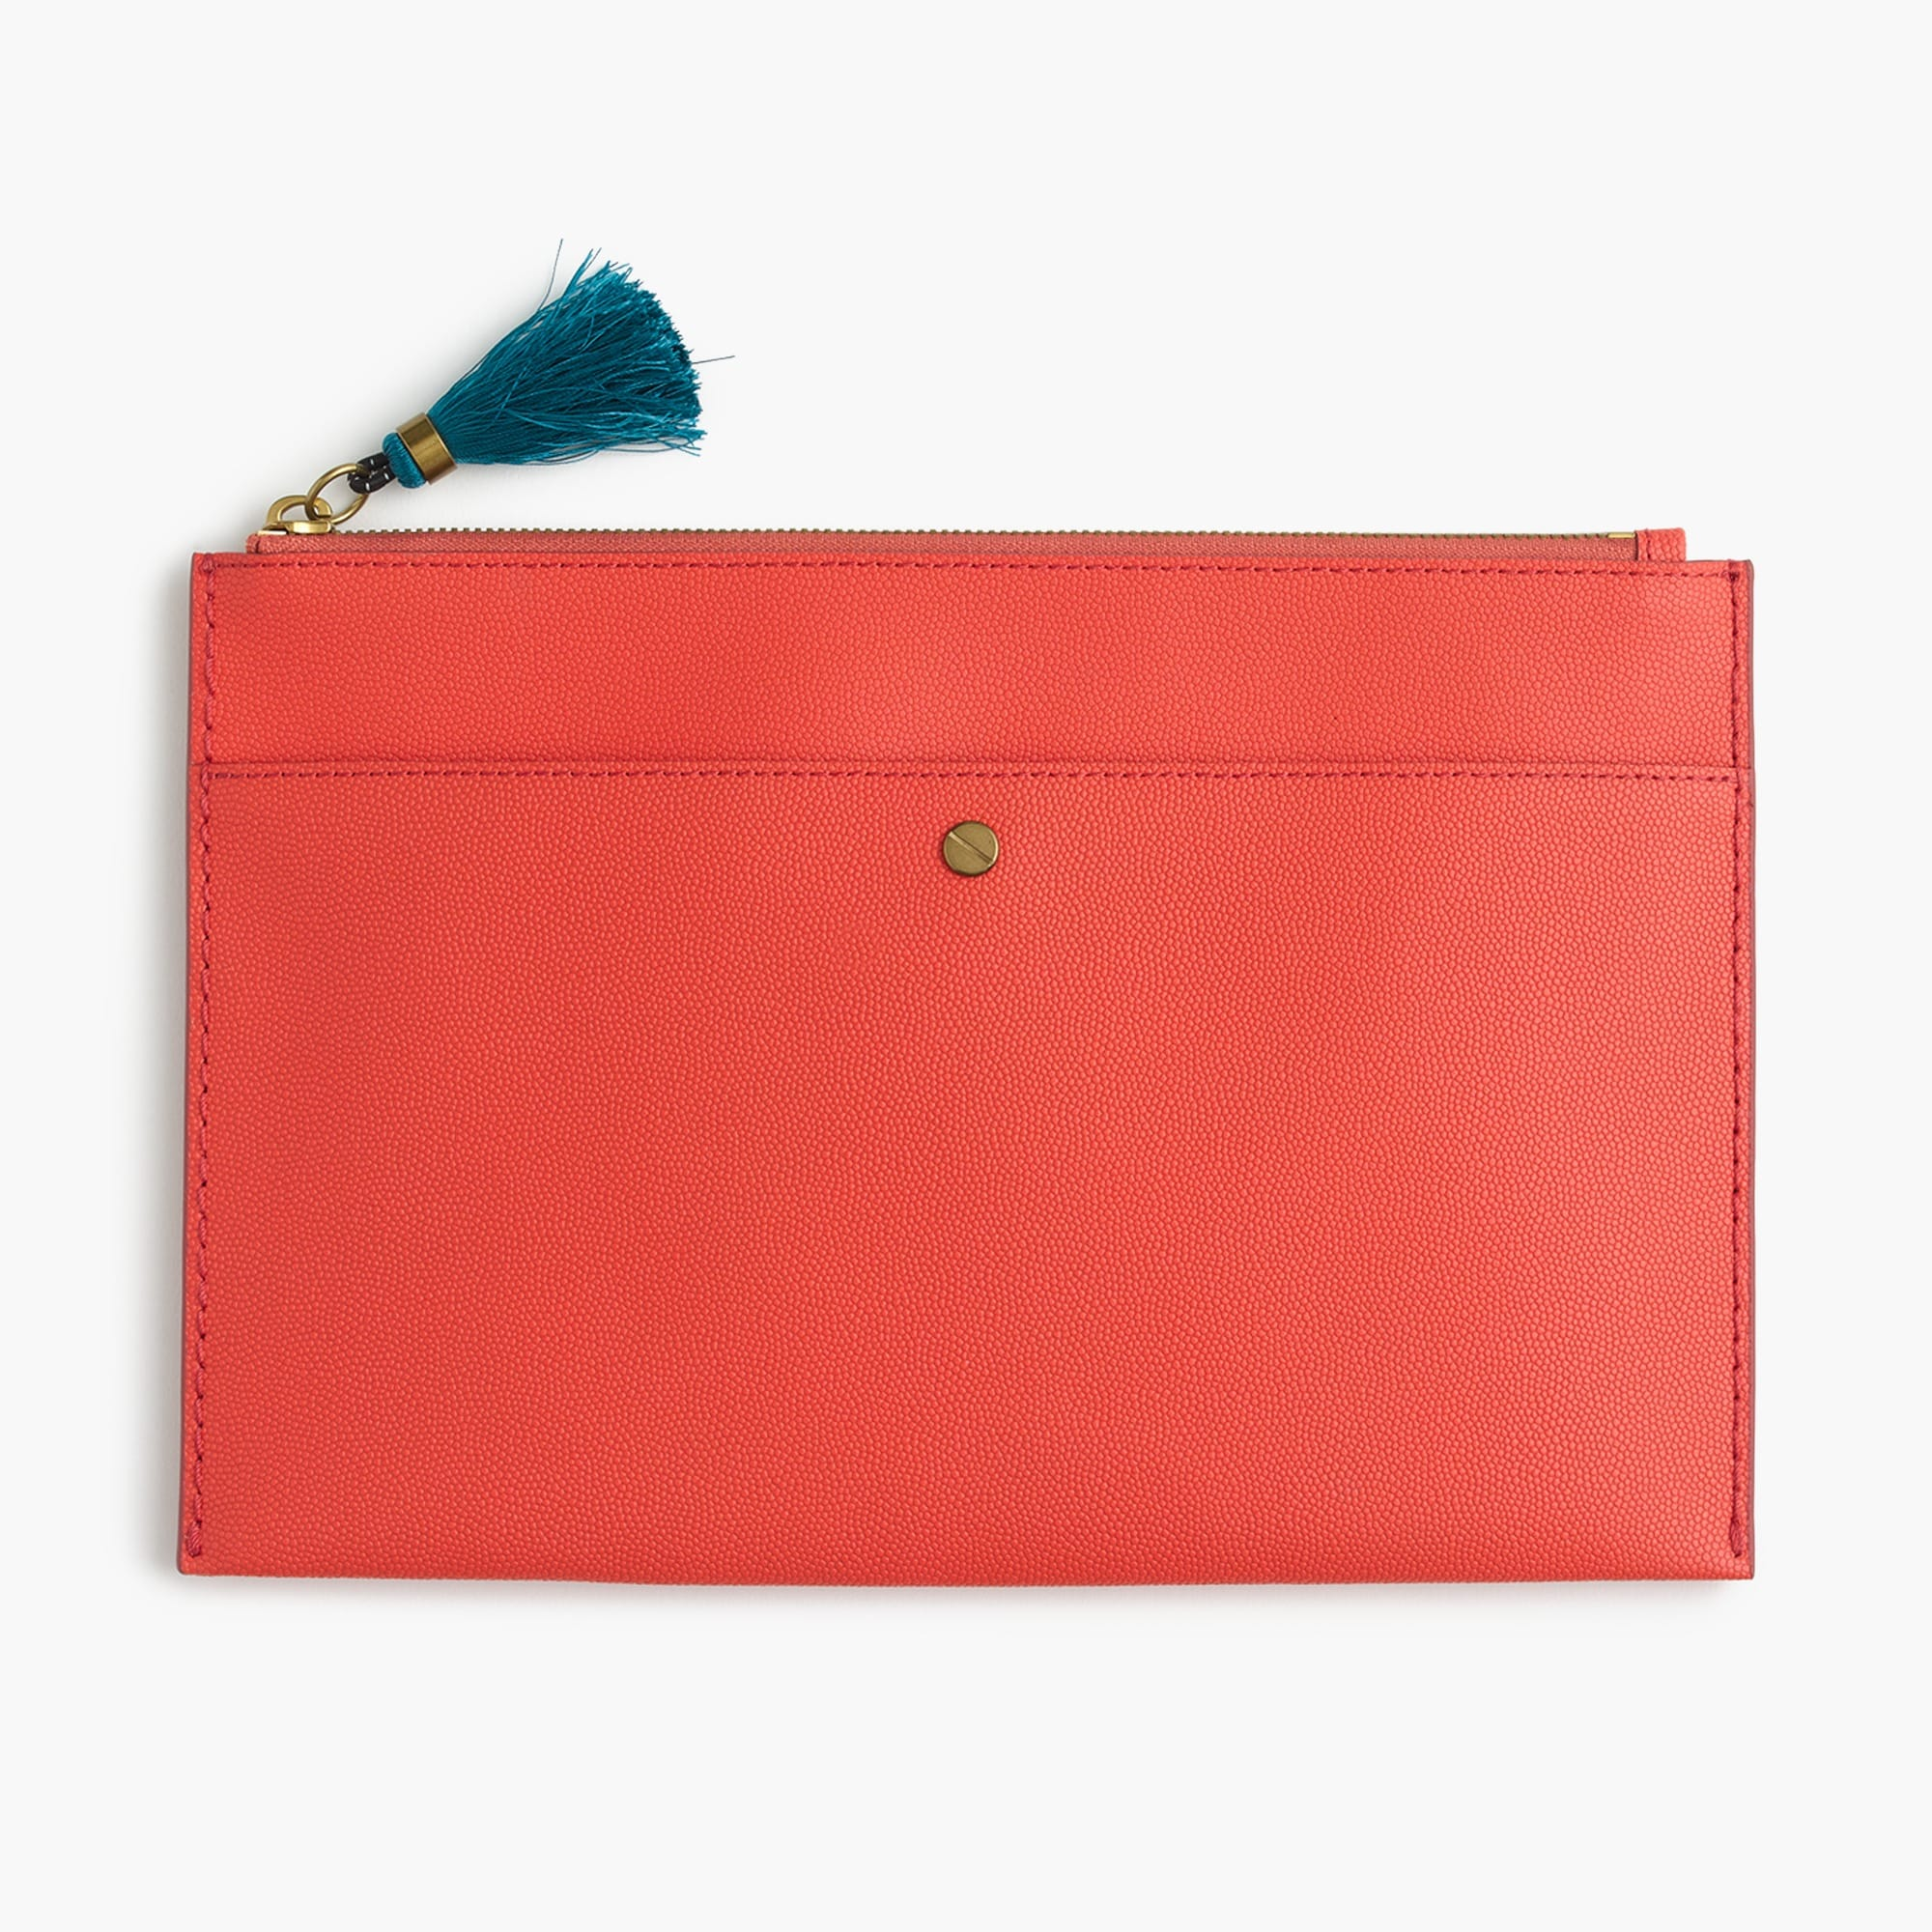 Large pouch in Italian leather